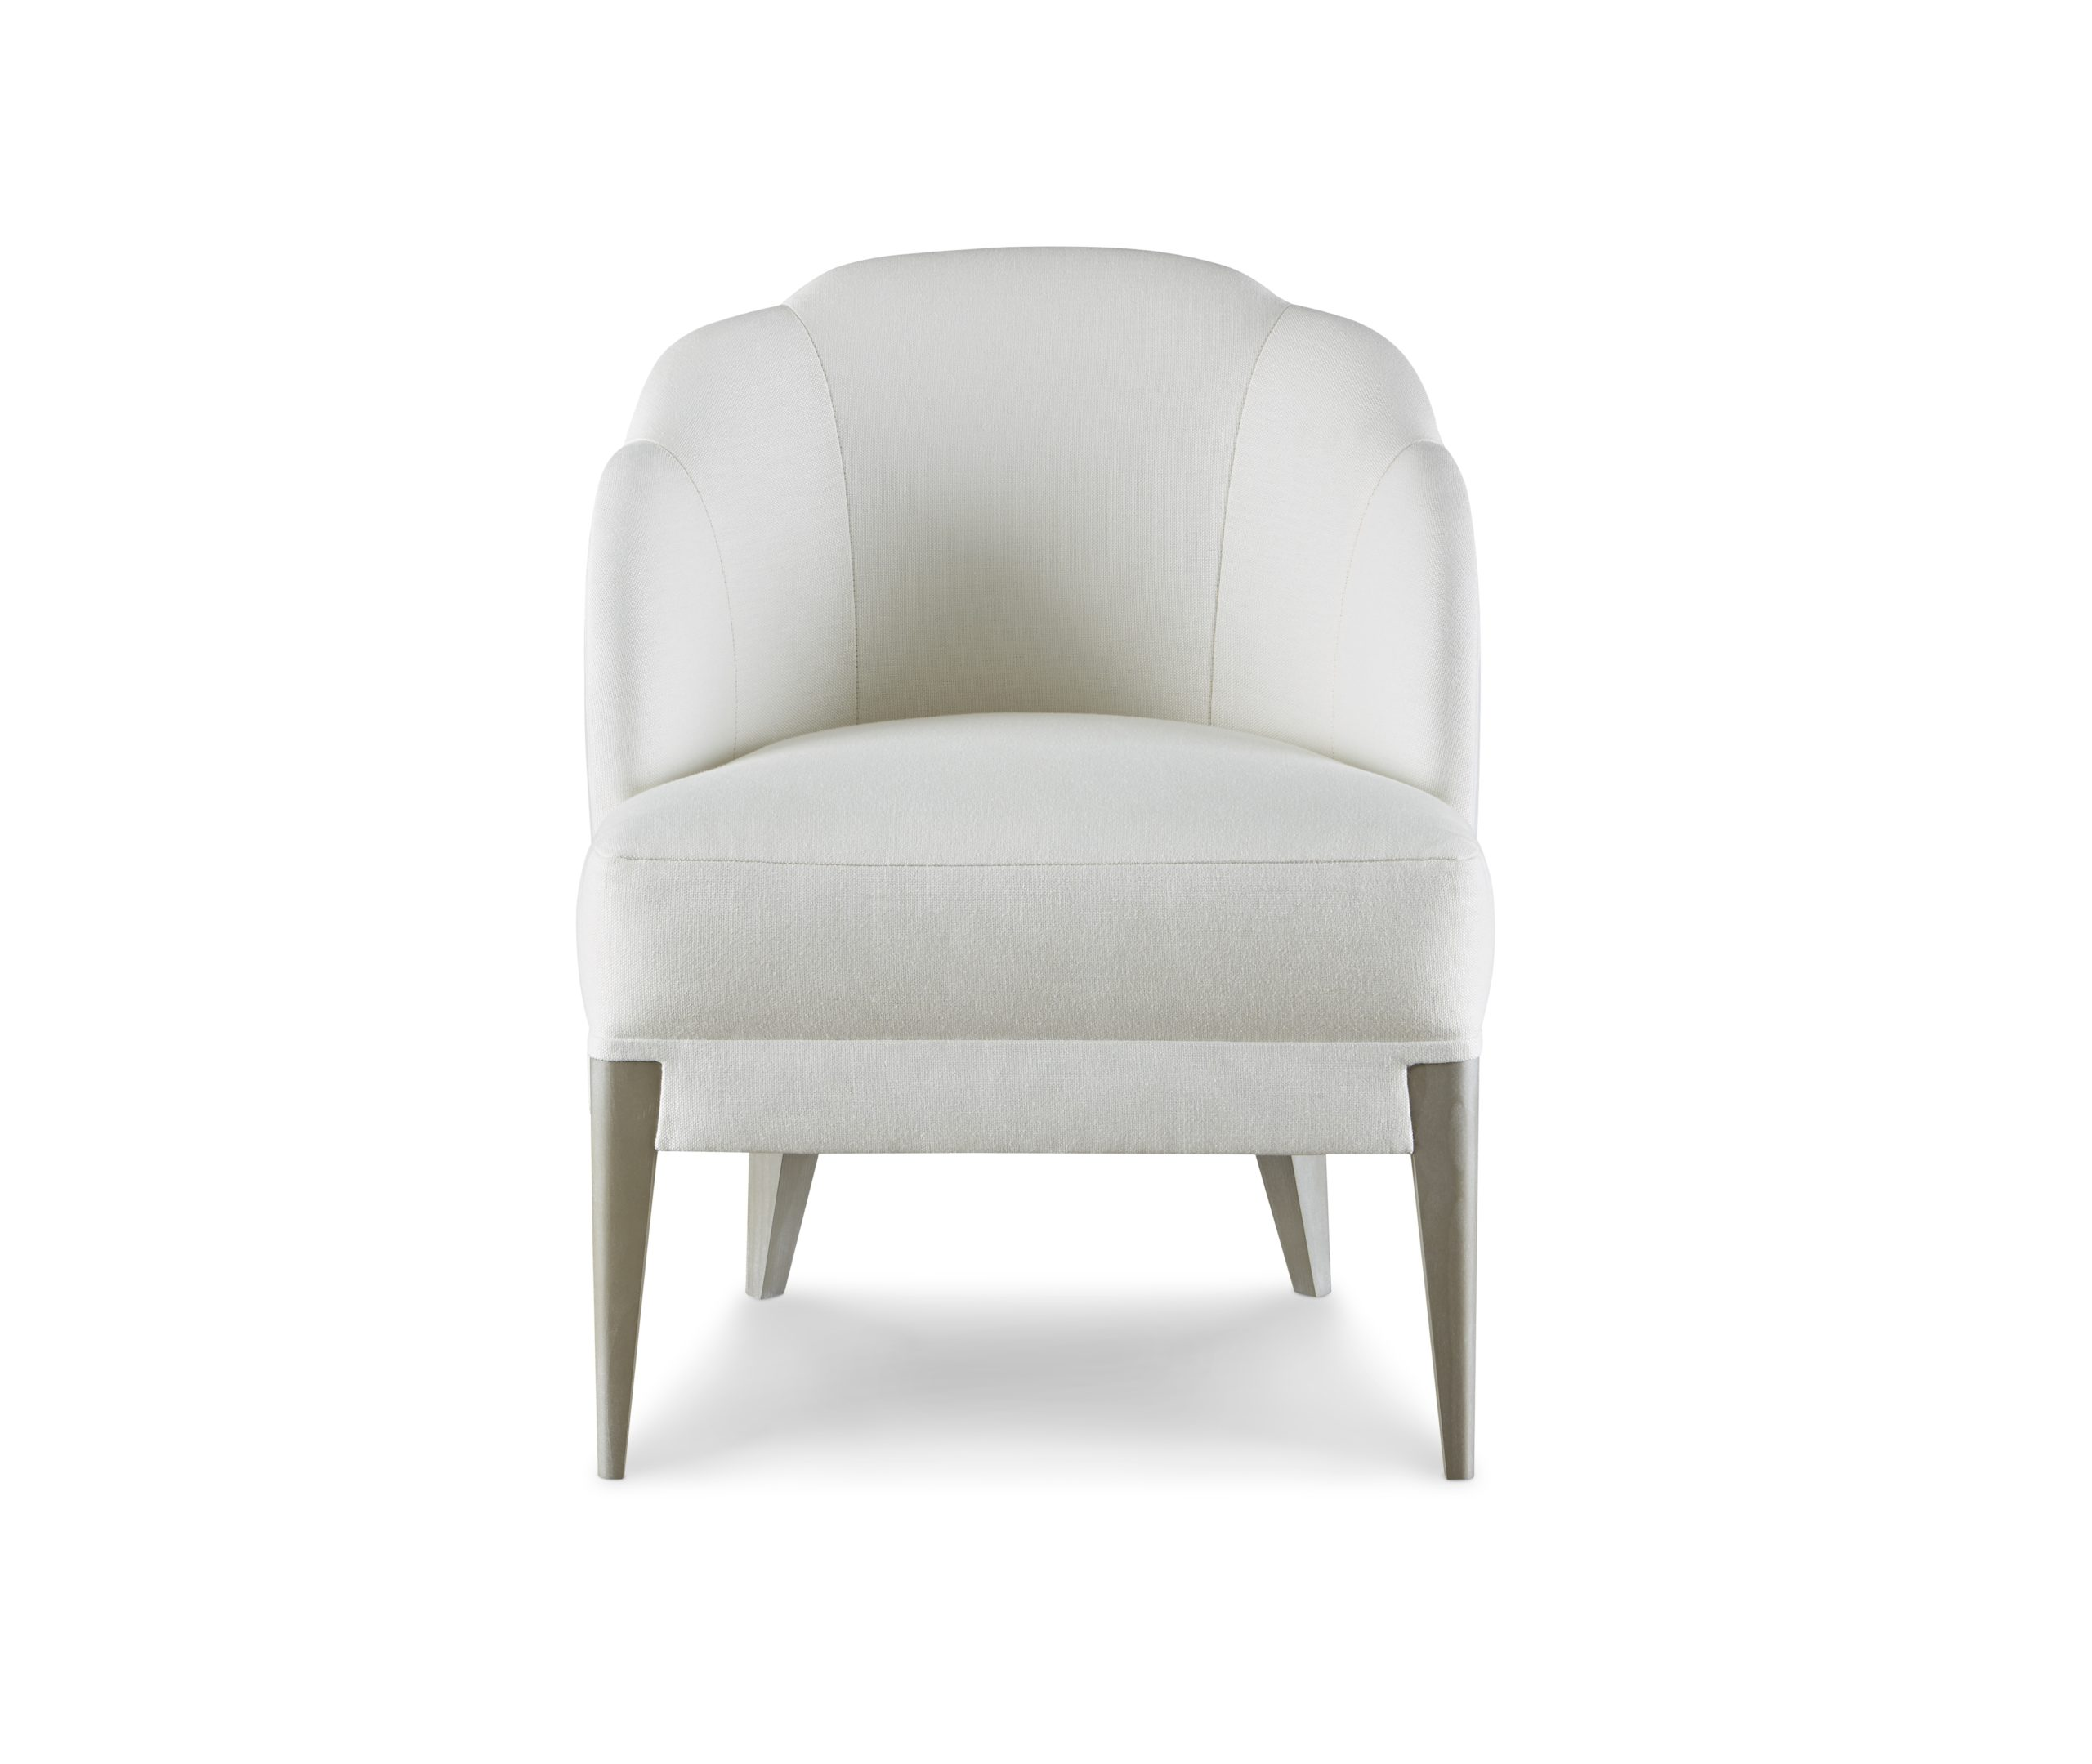 Baker_products_WNWN_sophie_chair_BAU3306c_FRONT-2-scaled-1